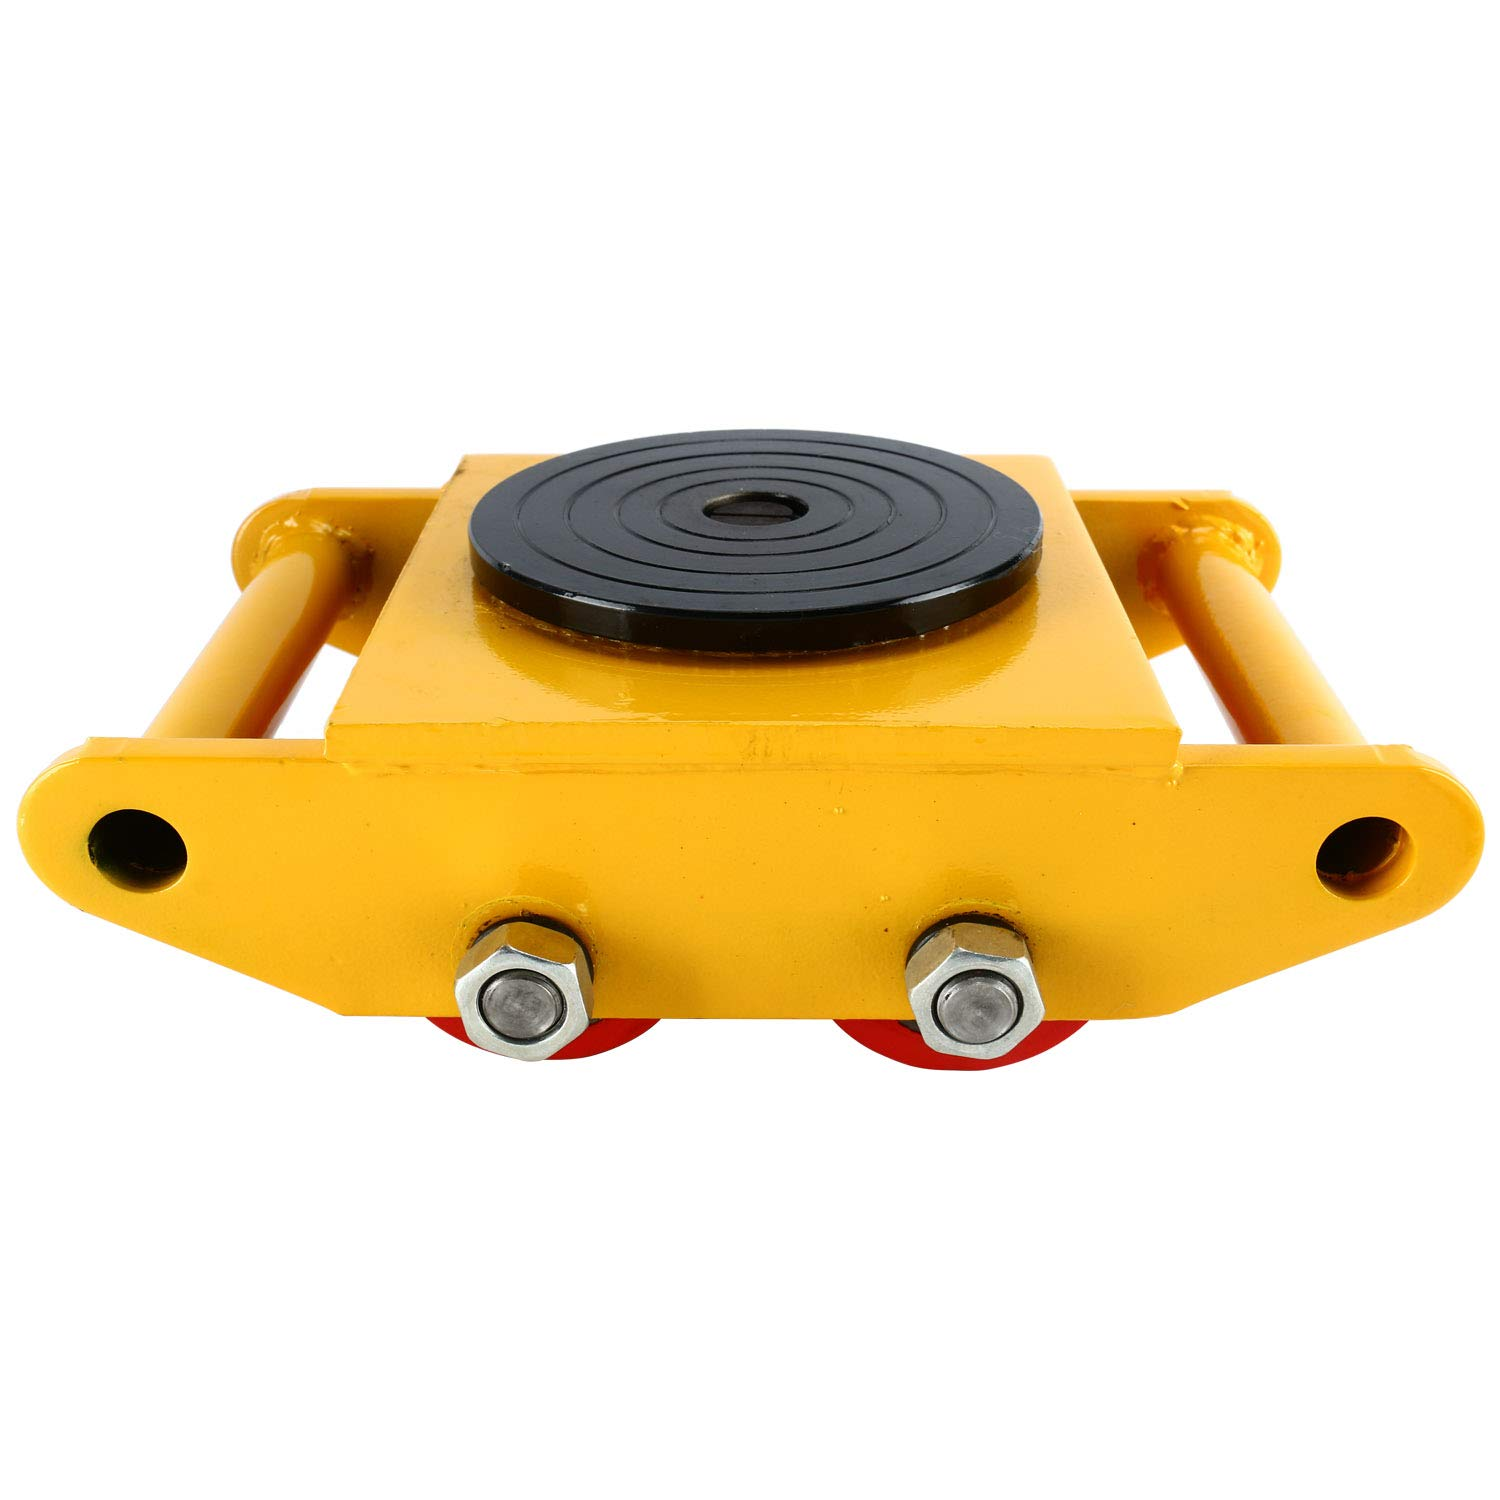 YaeTek Industrial Machinery Mover 13200 lbs 6 Tons Machinery Skate Dolly with 4 Rollers Cap 360 Degree Rotation (Yellow) by YAE TEK (Image #2)